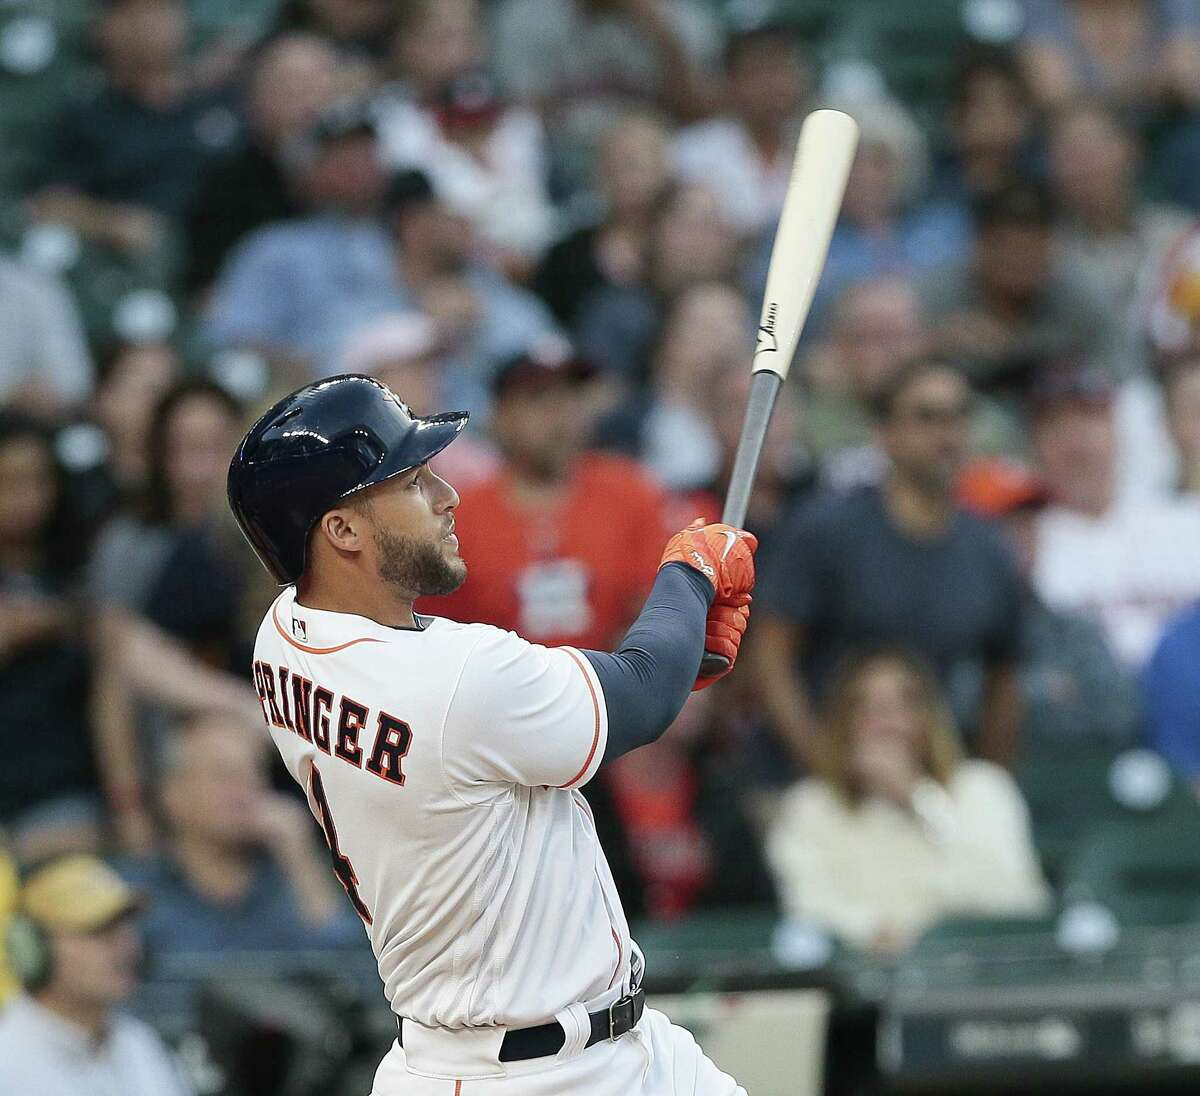 George Springer has been doing a lot of first-inning celebrating this season, with leadoff home runs in four of the Astros' first nine games of the season.